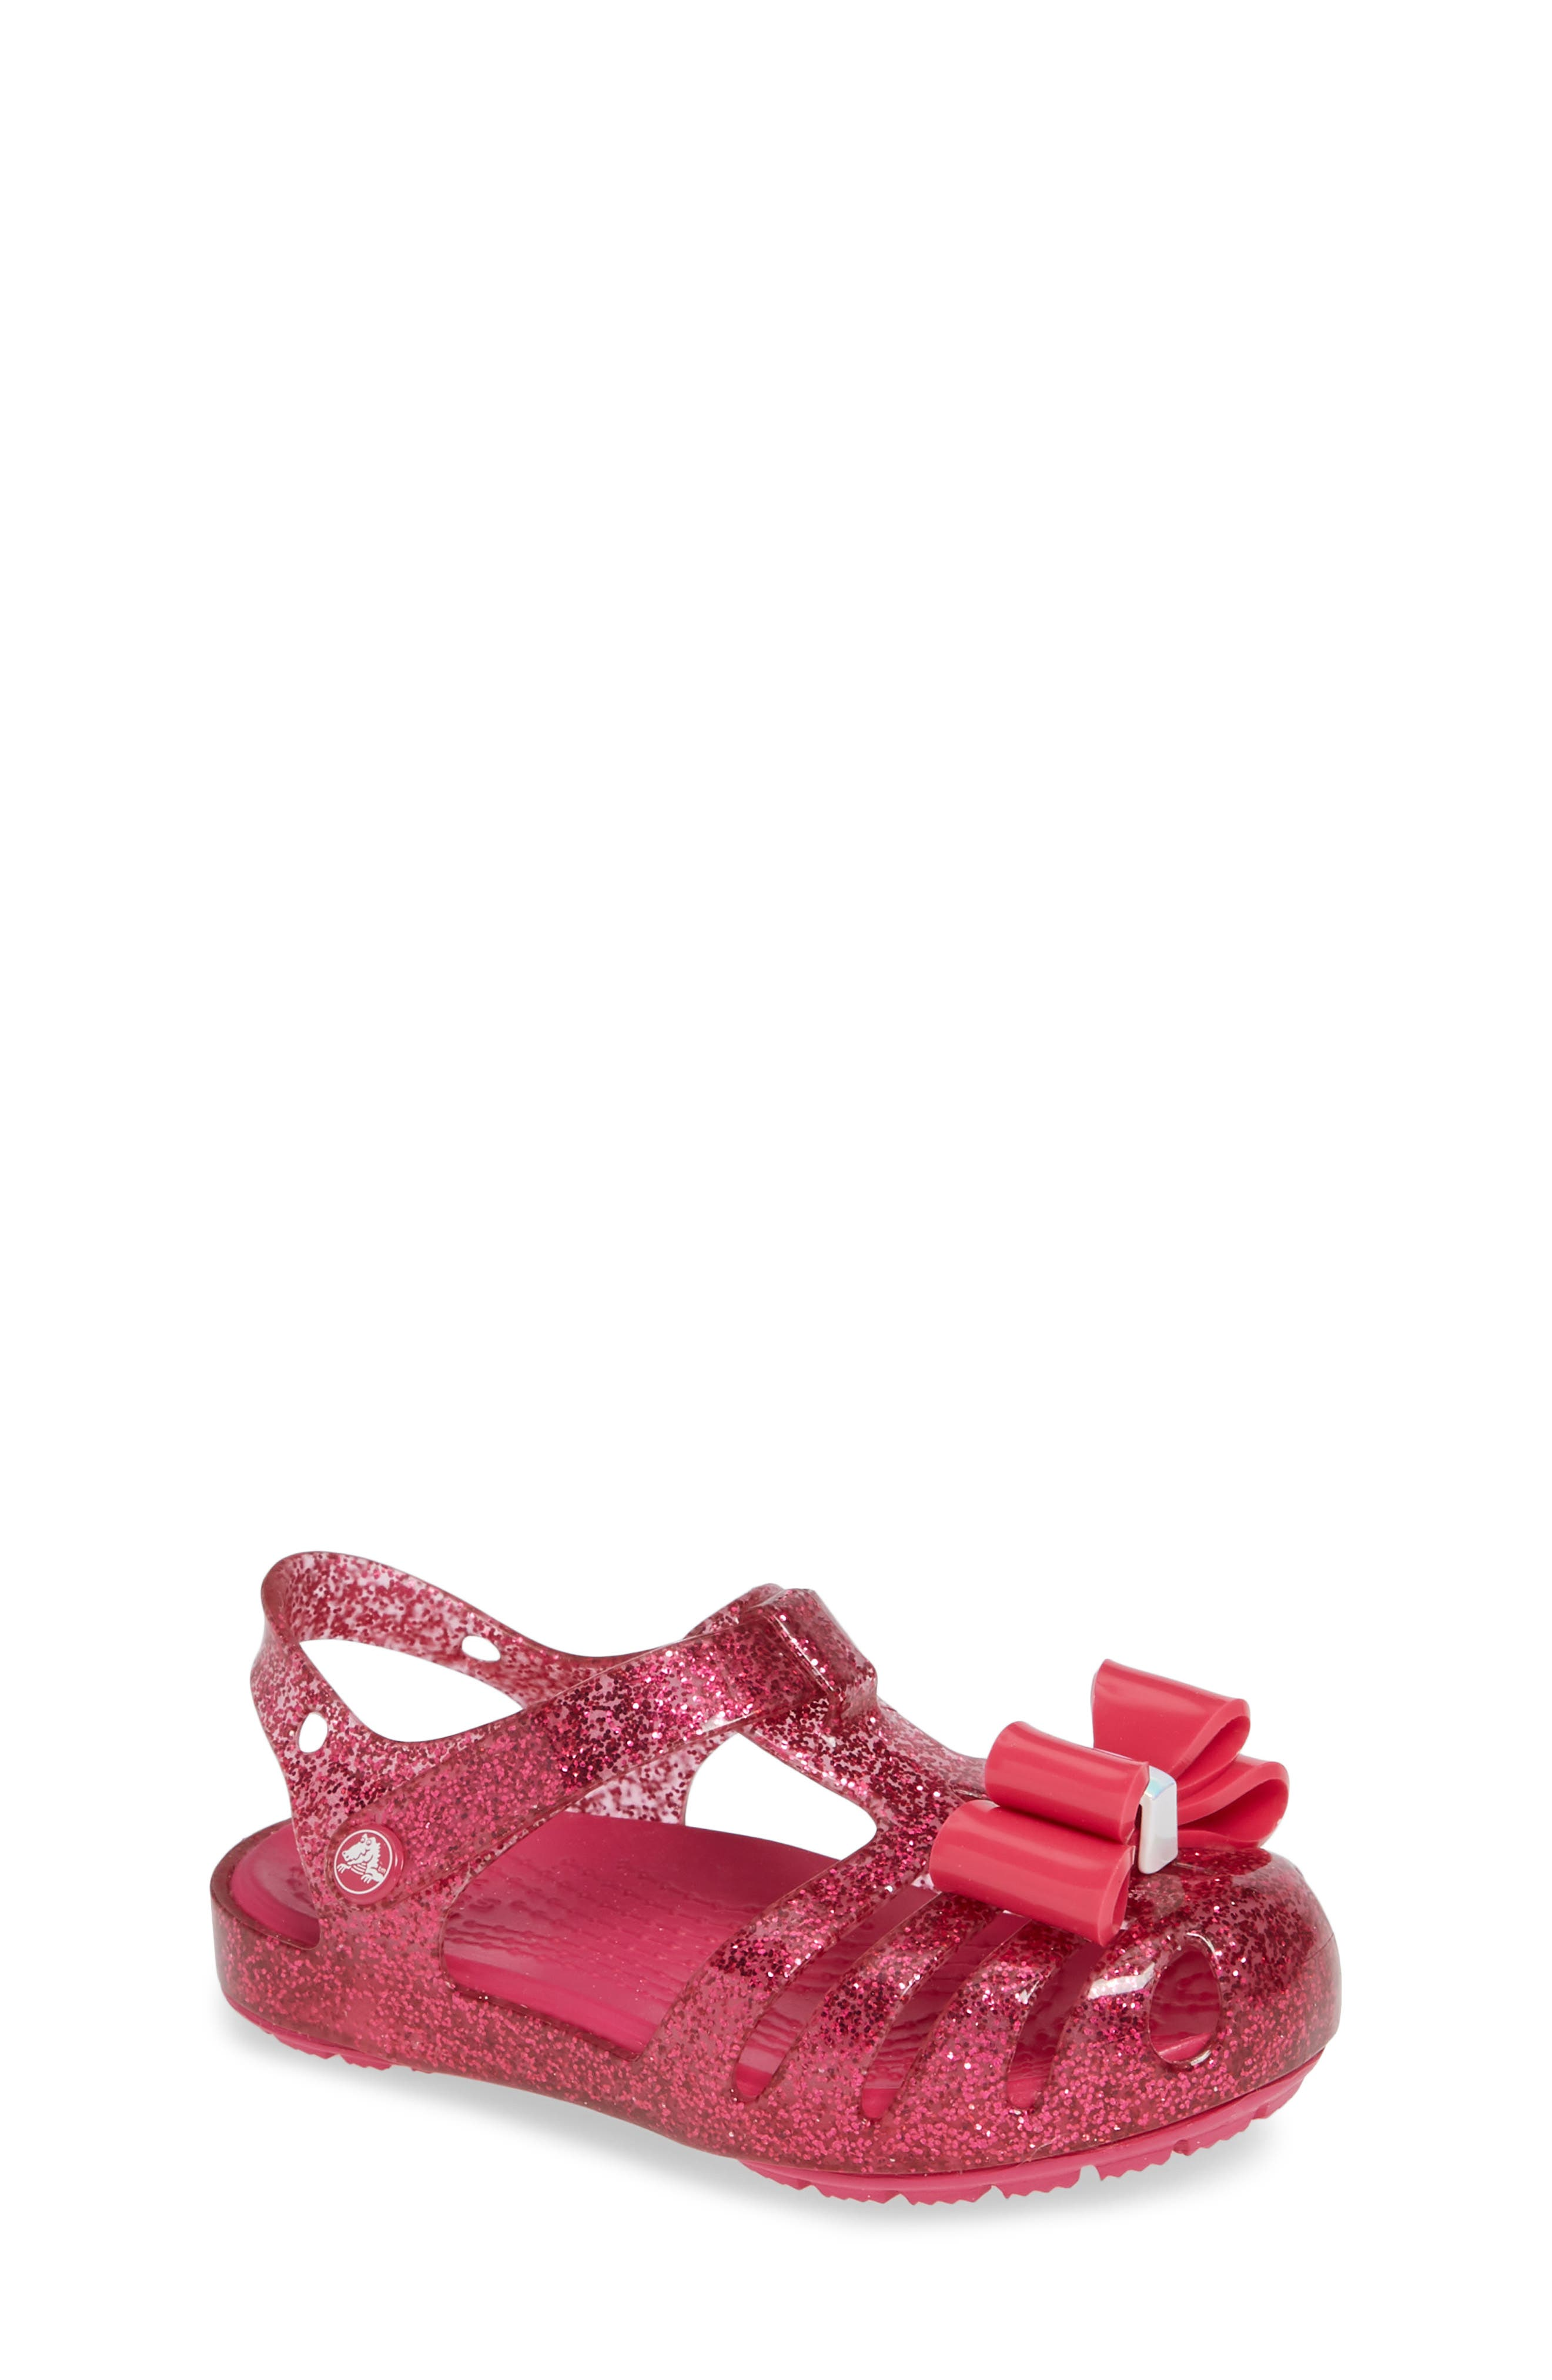 Isabella Bow Glitter Fisherman Sandal,                         Main,                         color, Candy Pink